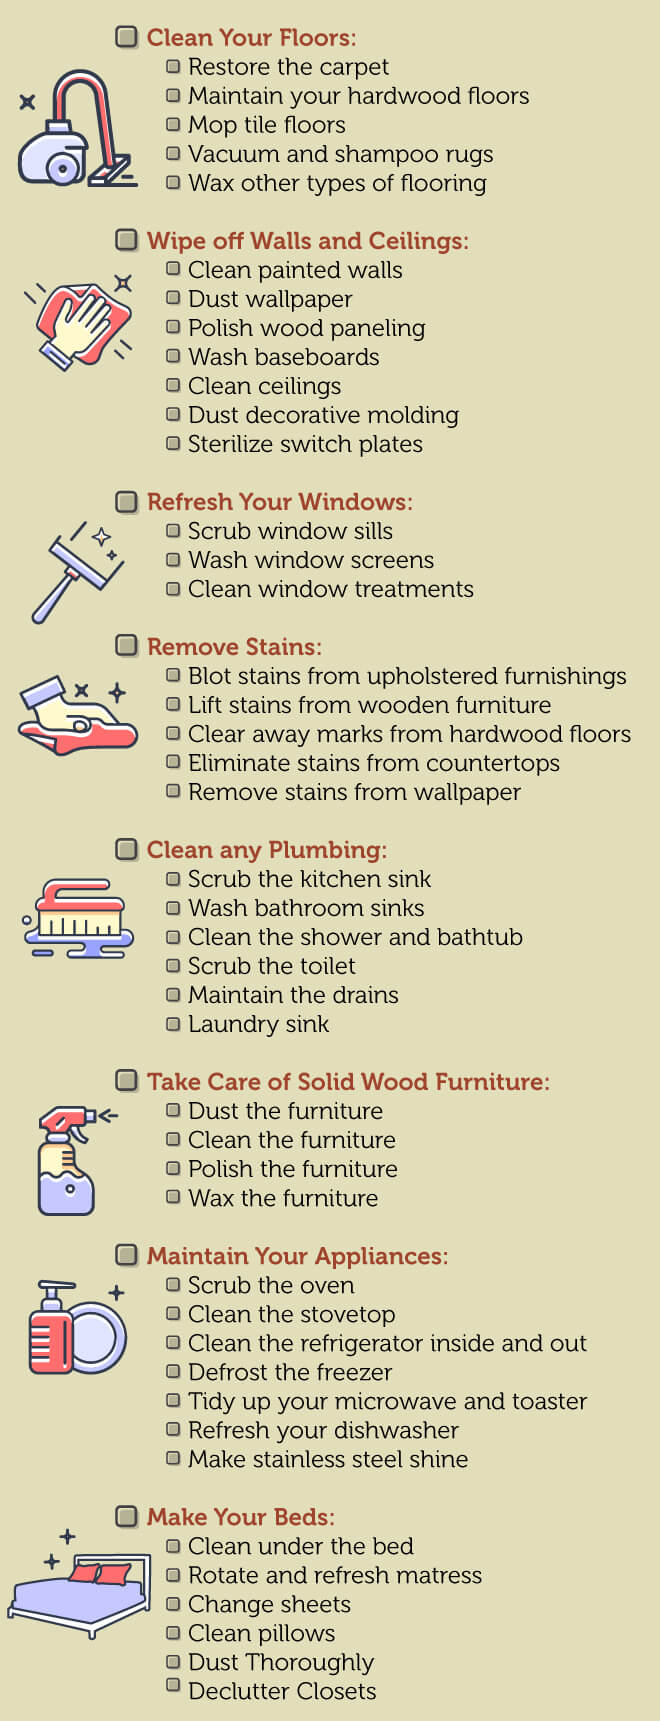 2-cleaning-list